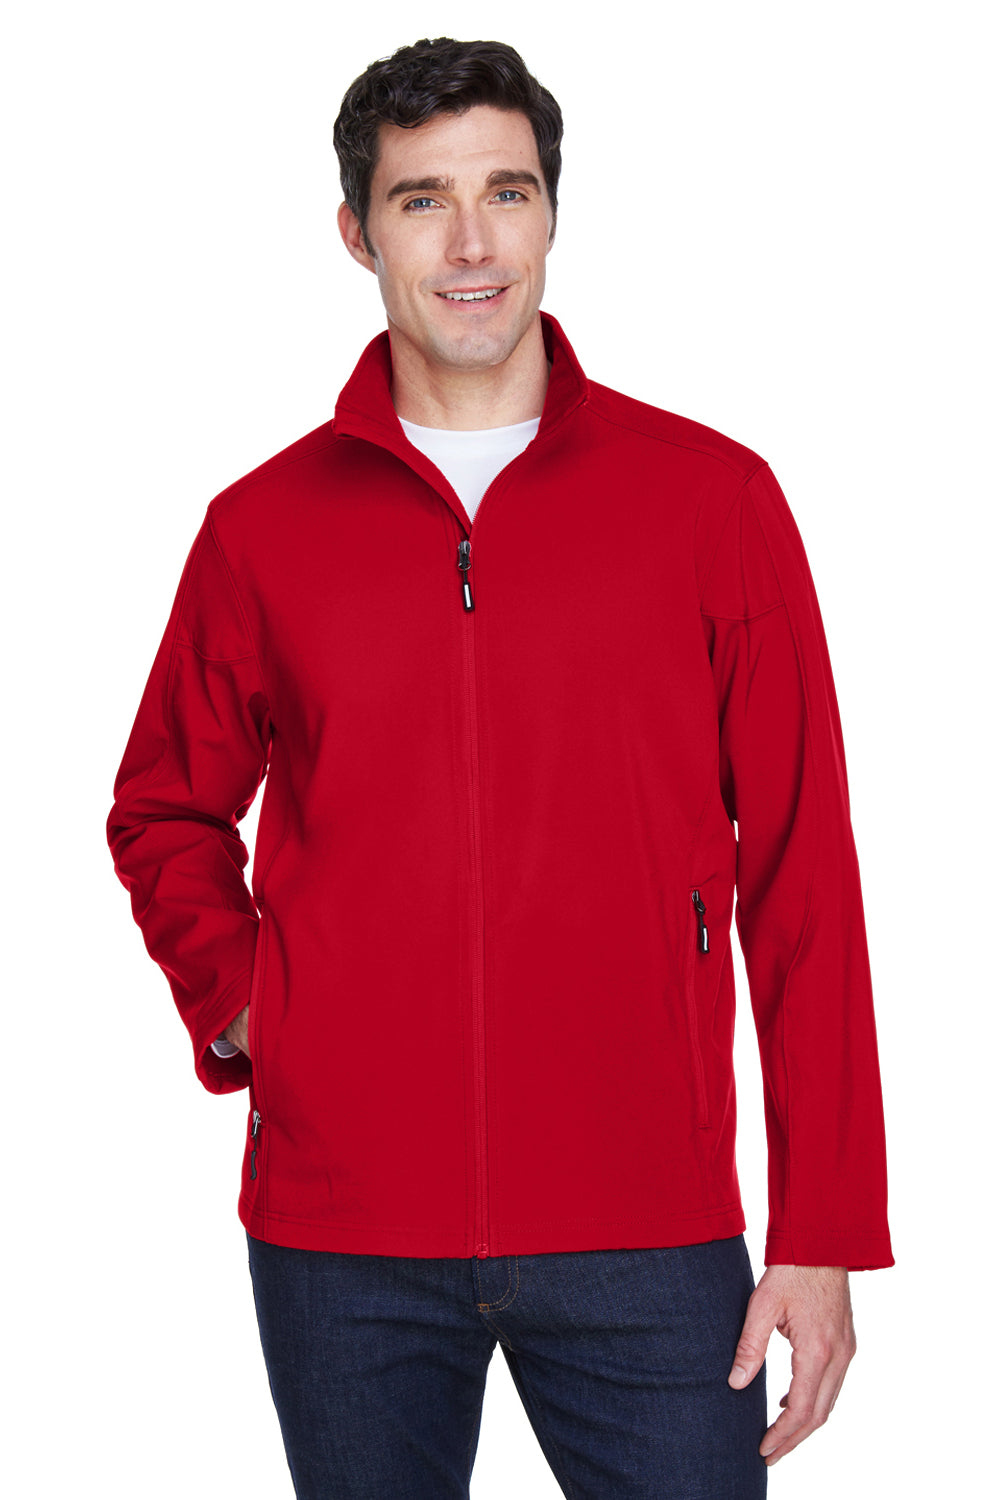 Core 365 88184 Mens Cruise Water Resistant Full Zip Jacket Red Front